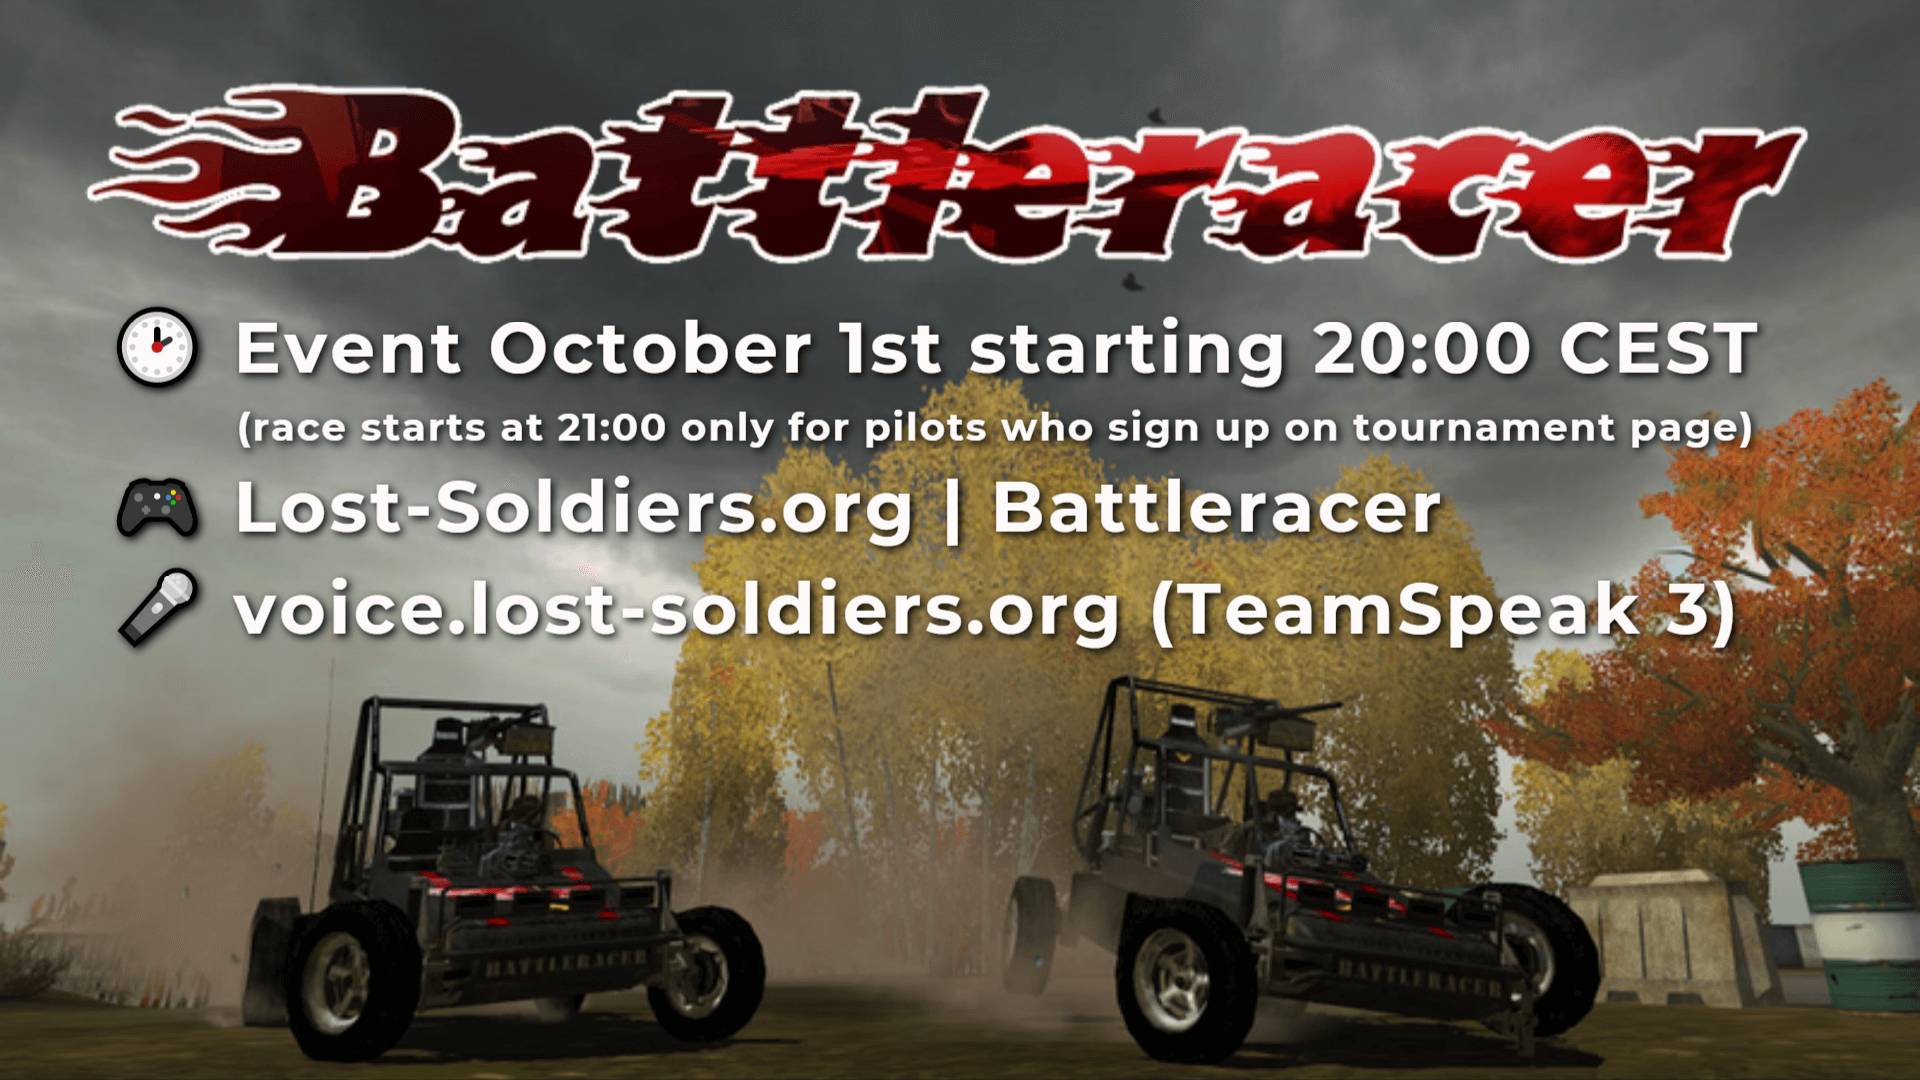 https://lost-soldiers.org/images/news-pics/Battleracer-Event-2020-min.png